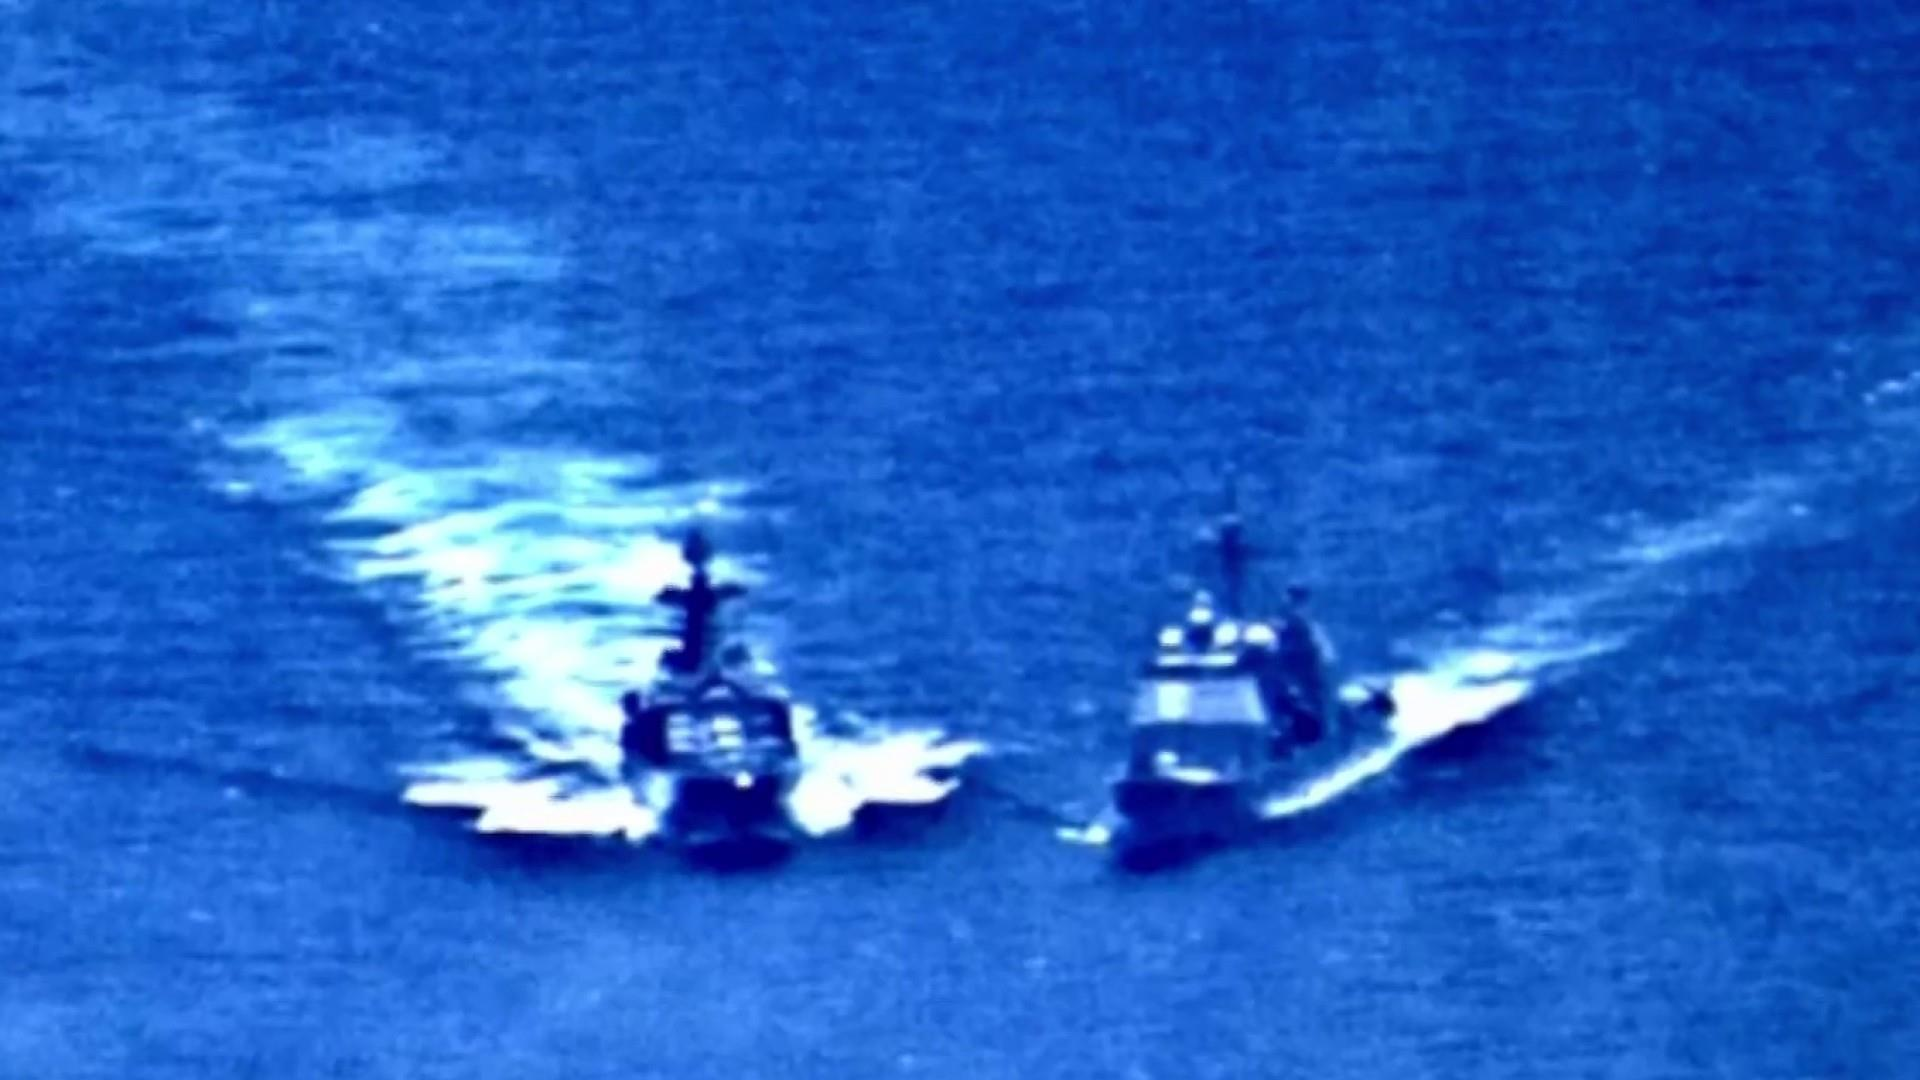 Russian ship nearly collides with U.S. warship in Philippine Sea